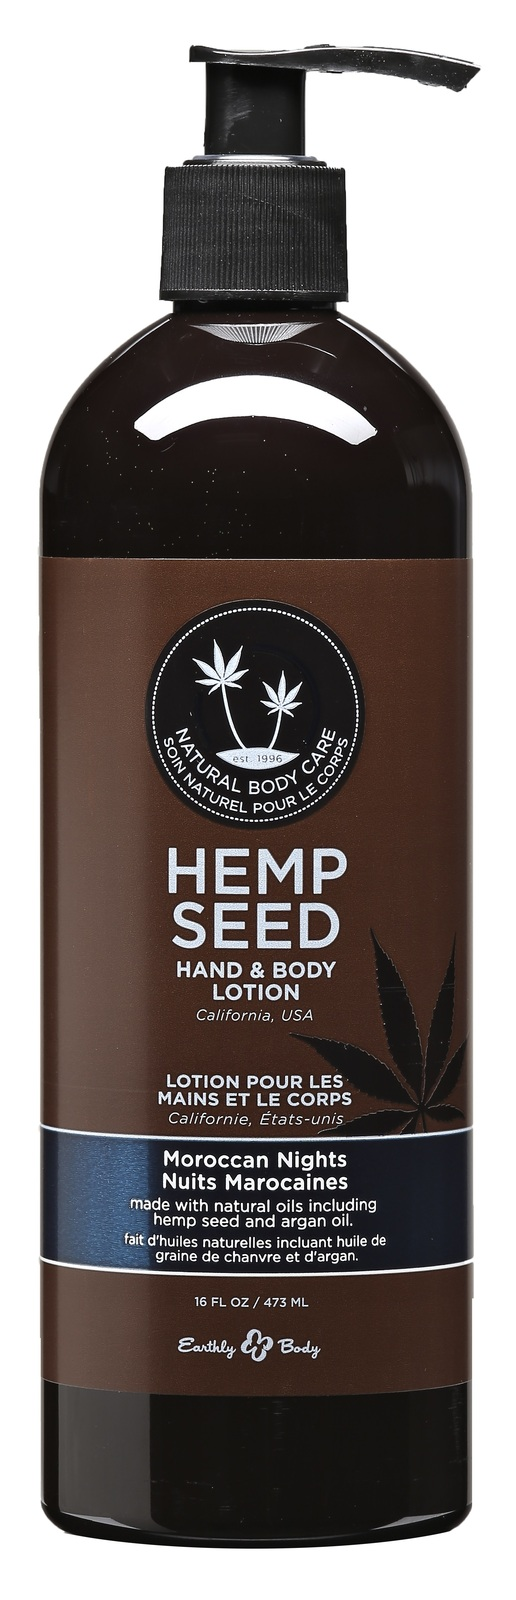 Hemp Seed Hand and Body Lotion - Moroccan Nights - 16 Fl. Oz.